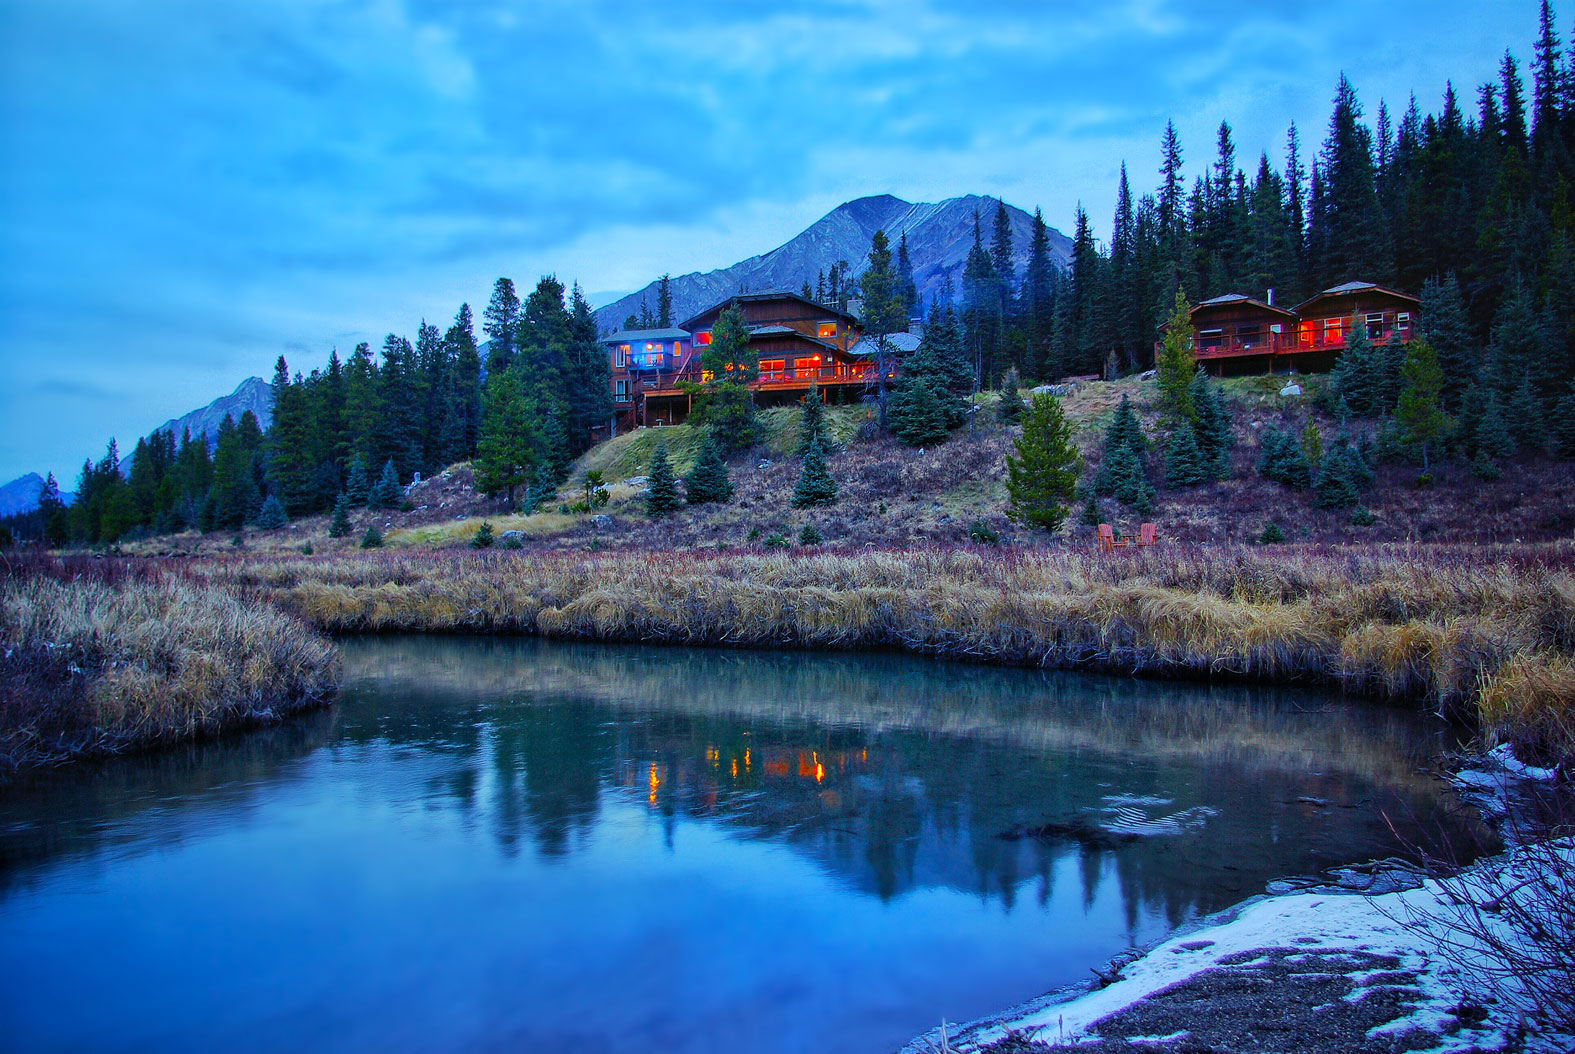 Mount Engadine Lodge is located in the area covered by the Conservation Pass